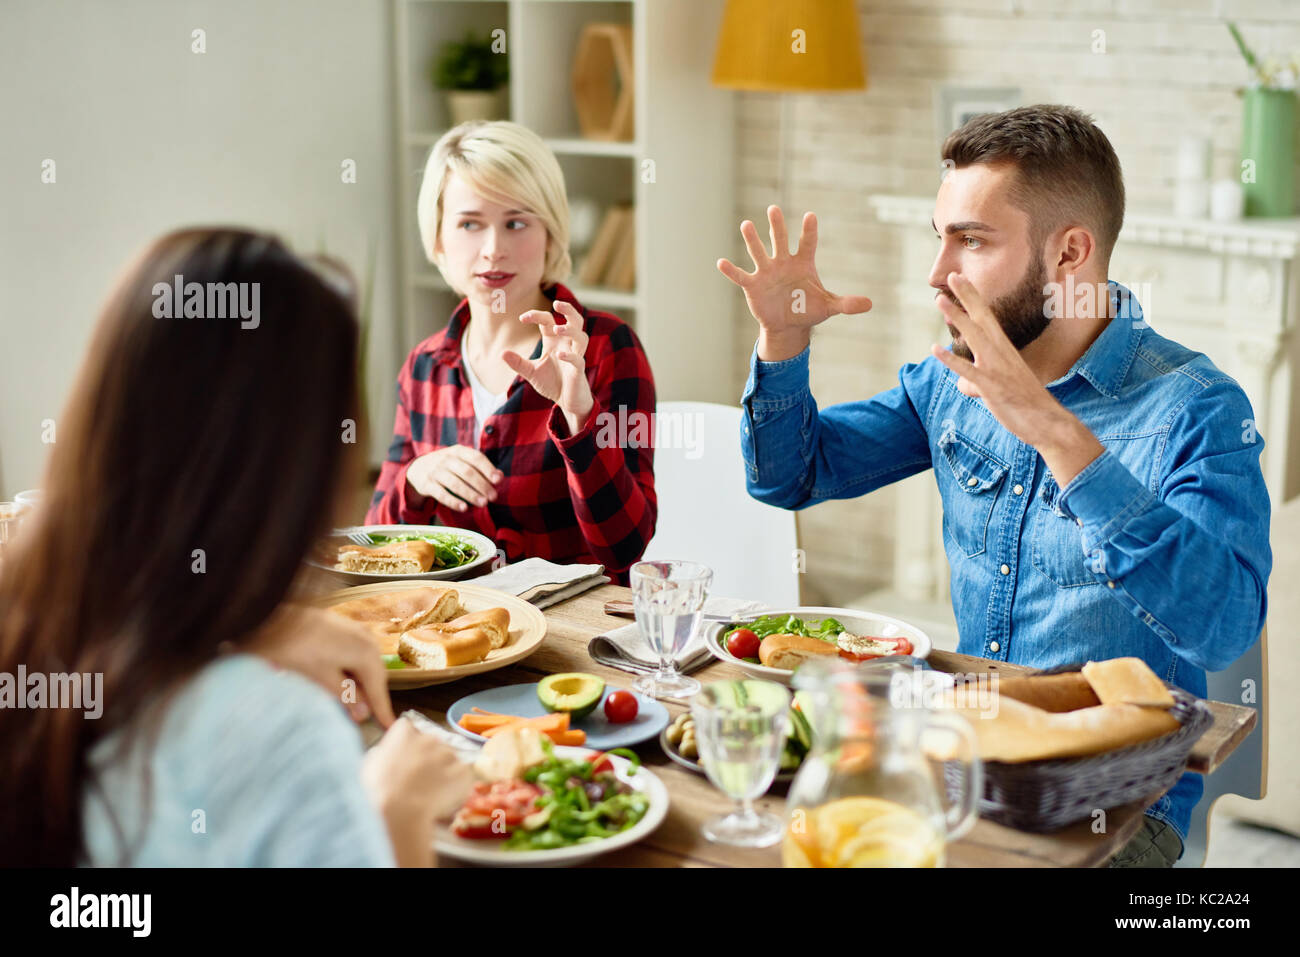 Portrait of young friends enjoying dinner together and big festive table and telling stories gesturing actively - Stock Image